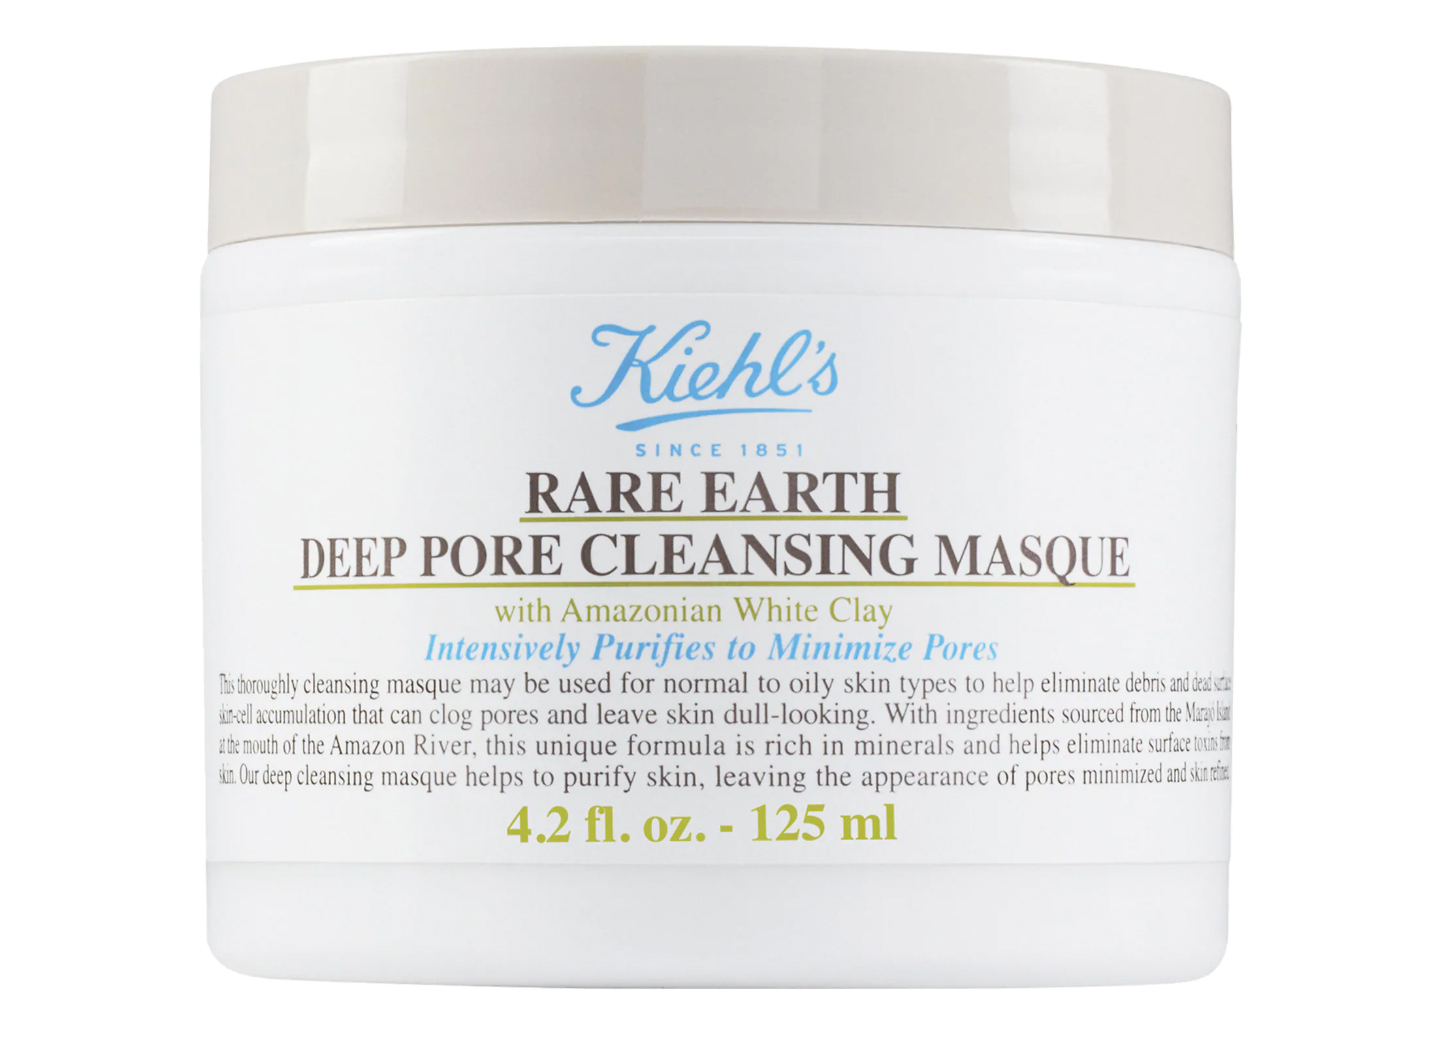 Rare Earth Deep Pore Cleansing Masque by Kiehl's Since 1851